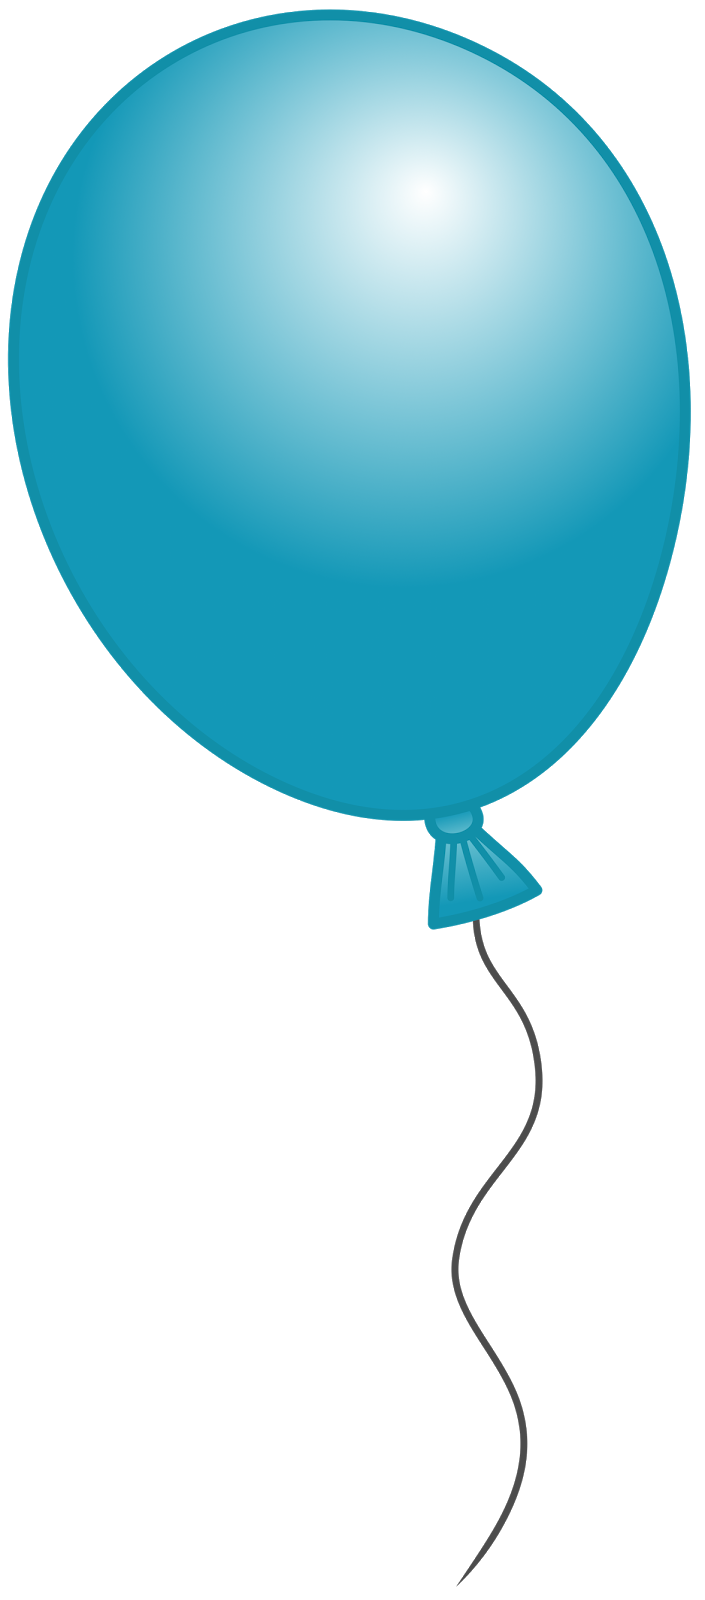 Free Blue Balloon Cliparts, Download Free Clip Art, Free Clip Art on ... picture freeuse download